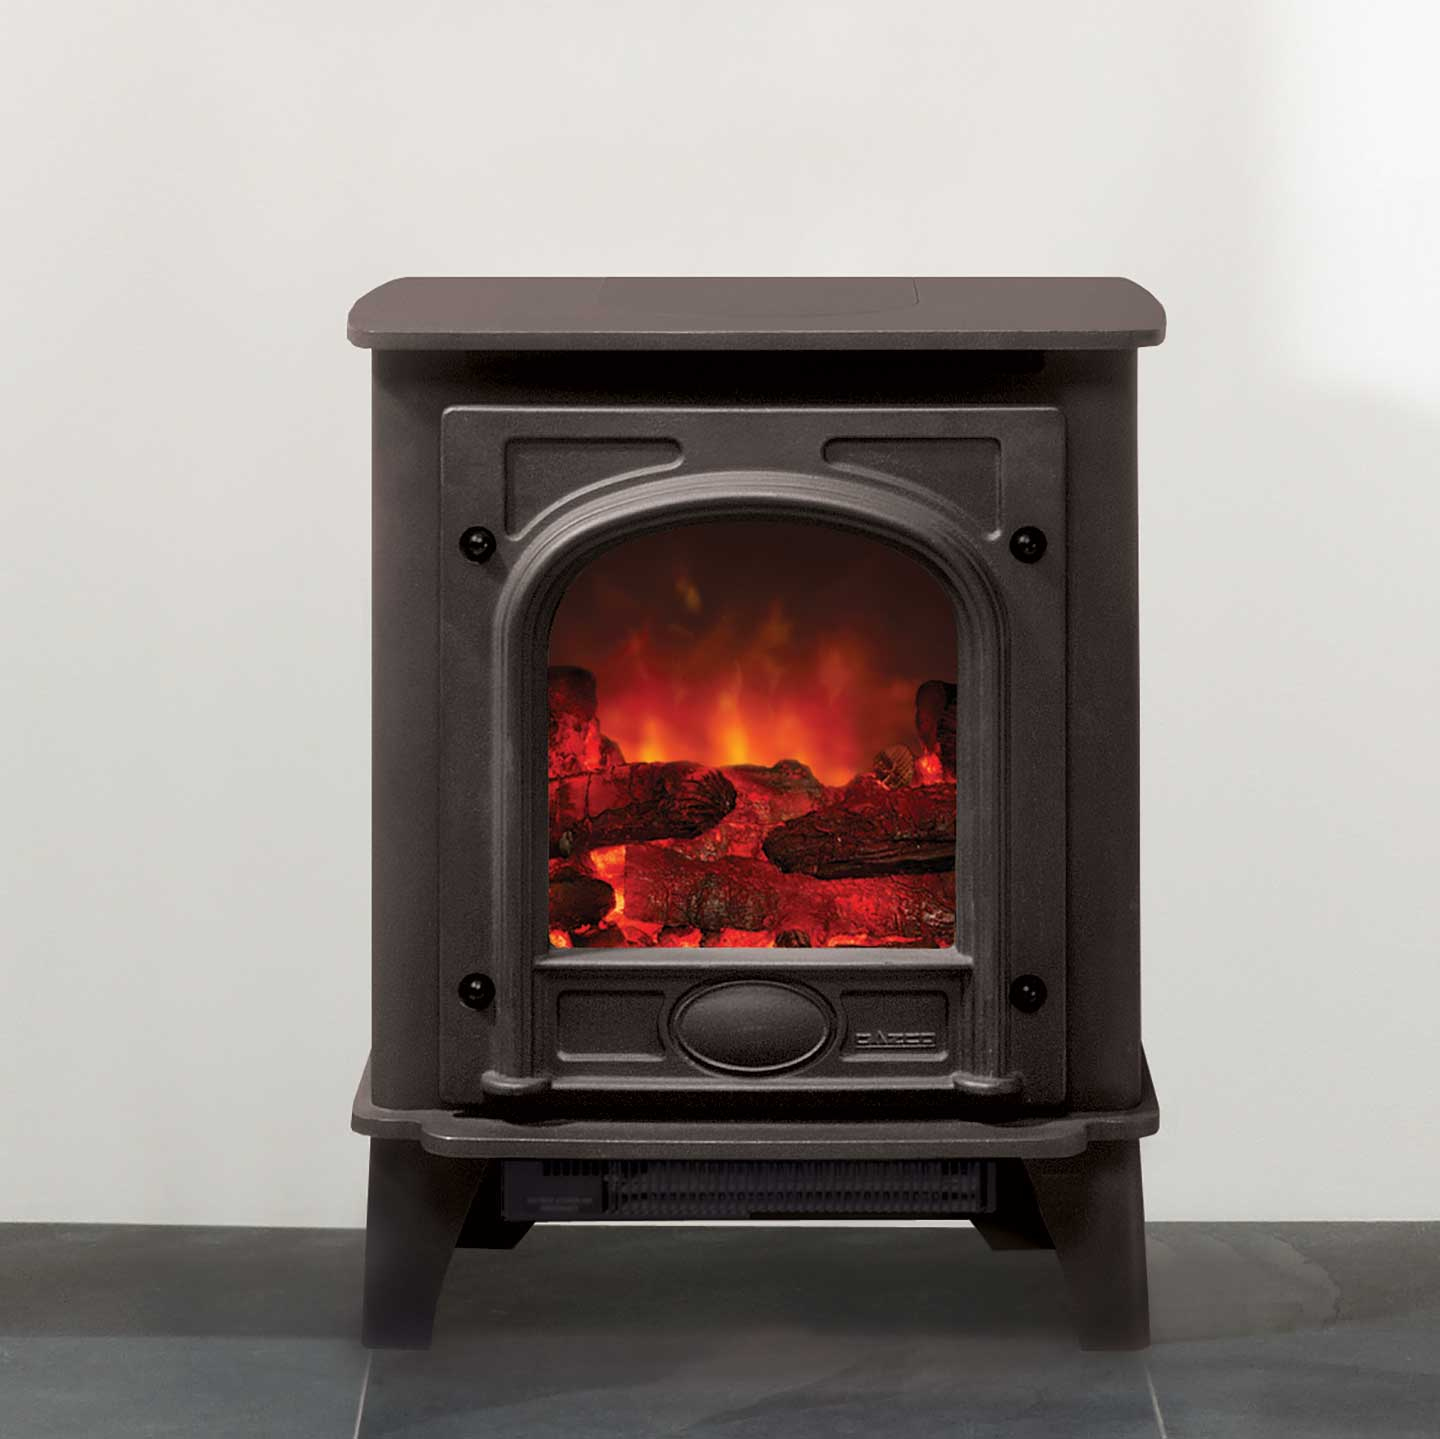 Gazco Small Stockton Electric Stove The Stove Site